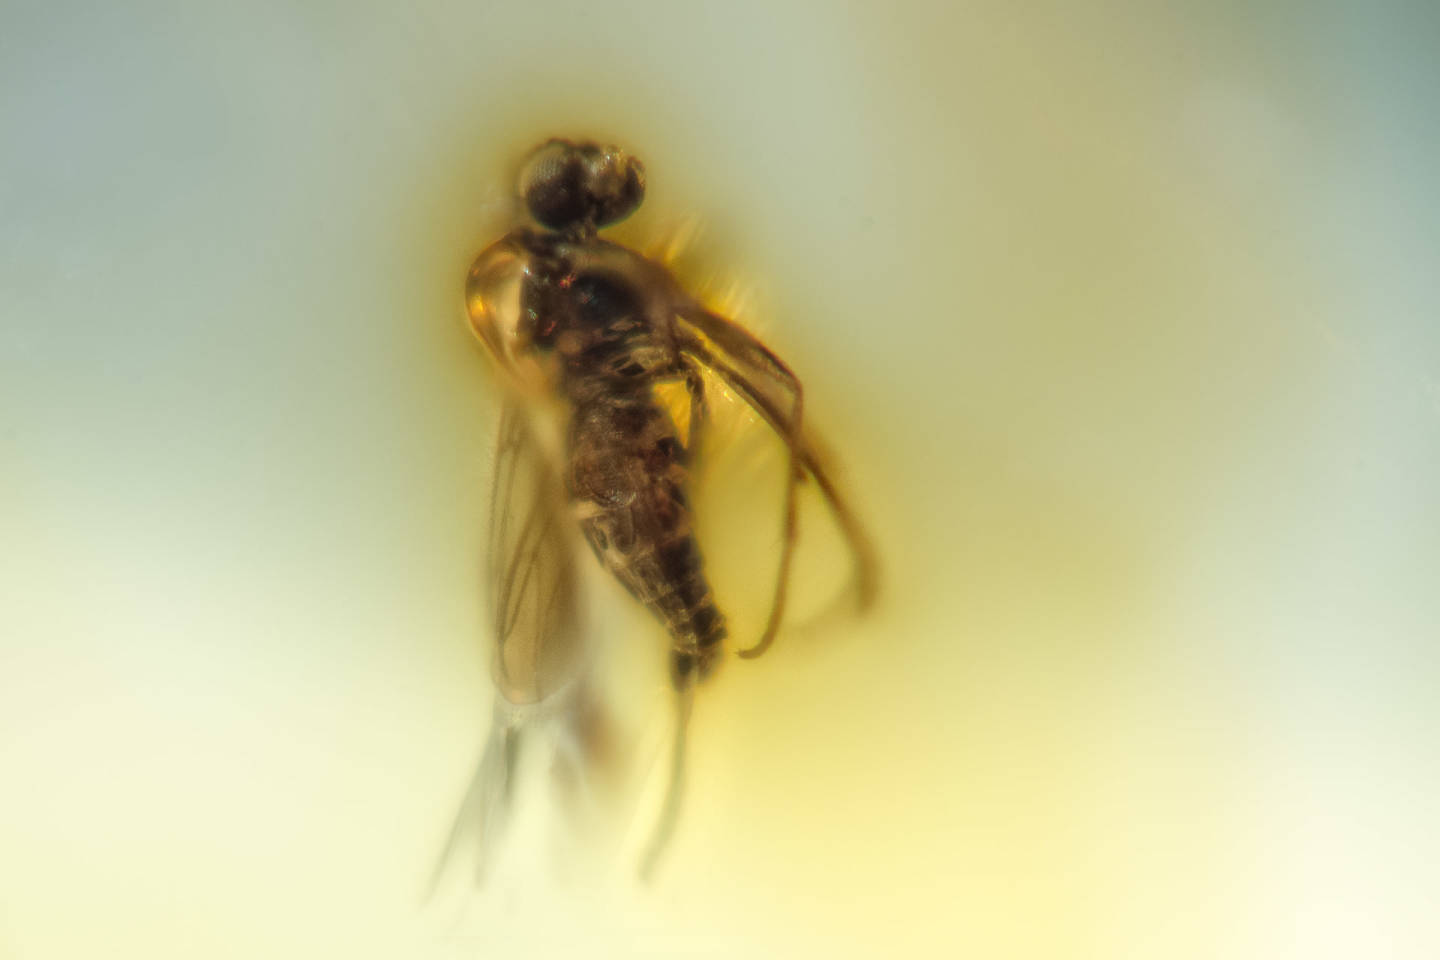 Dominican amber insect 20 mln years old